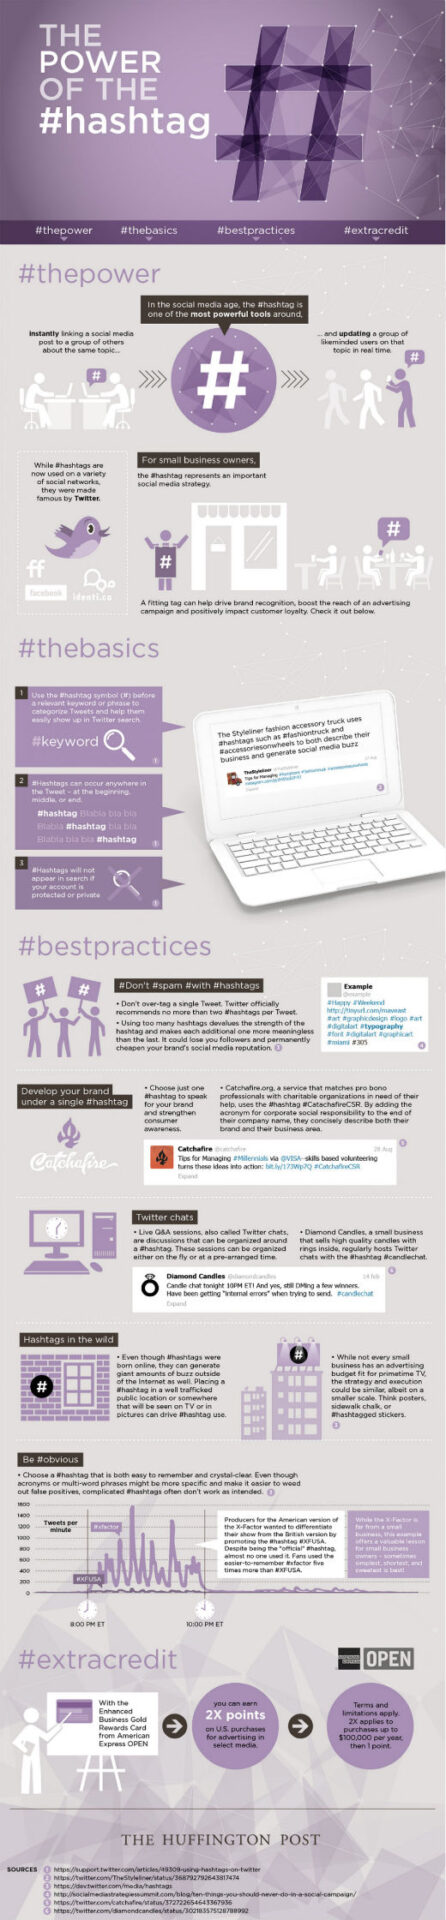 using hashtags for small business